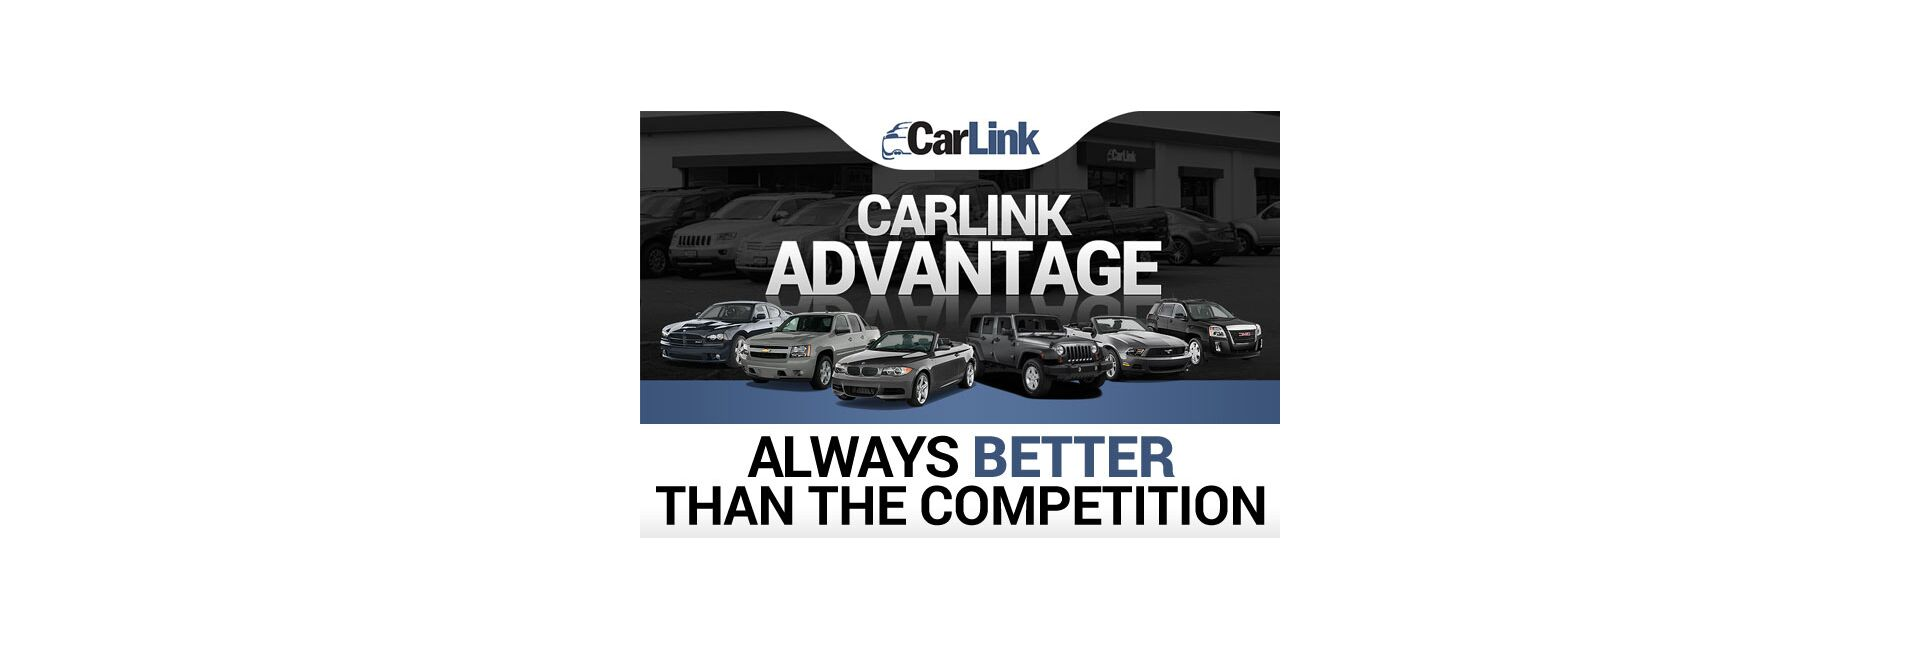 carlink_advantage